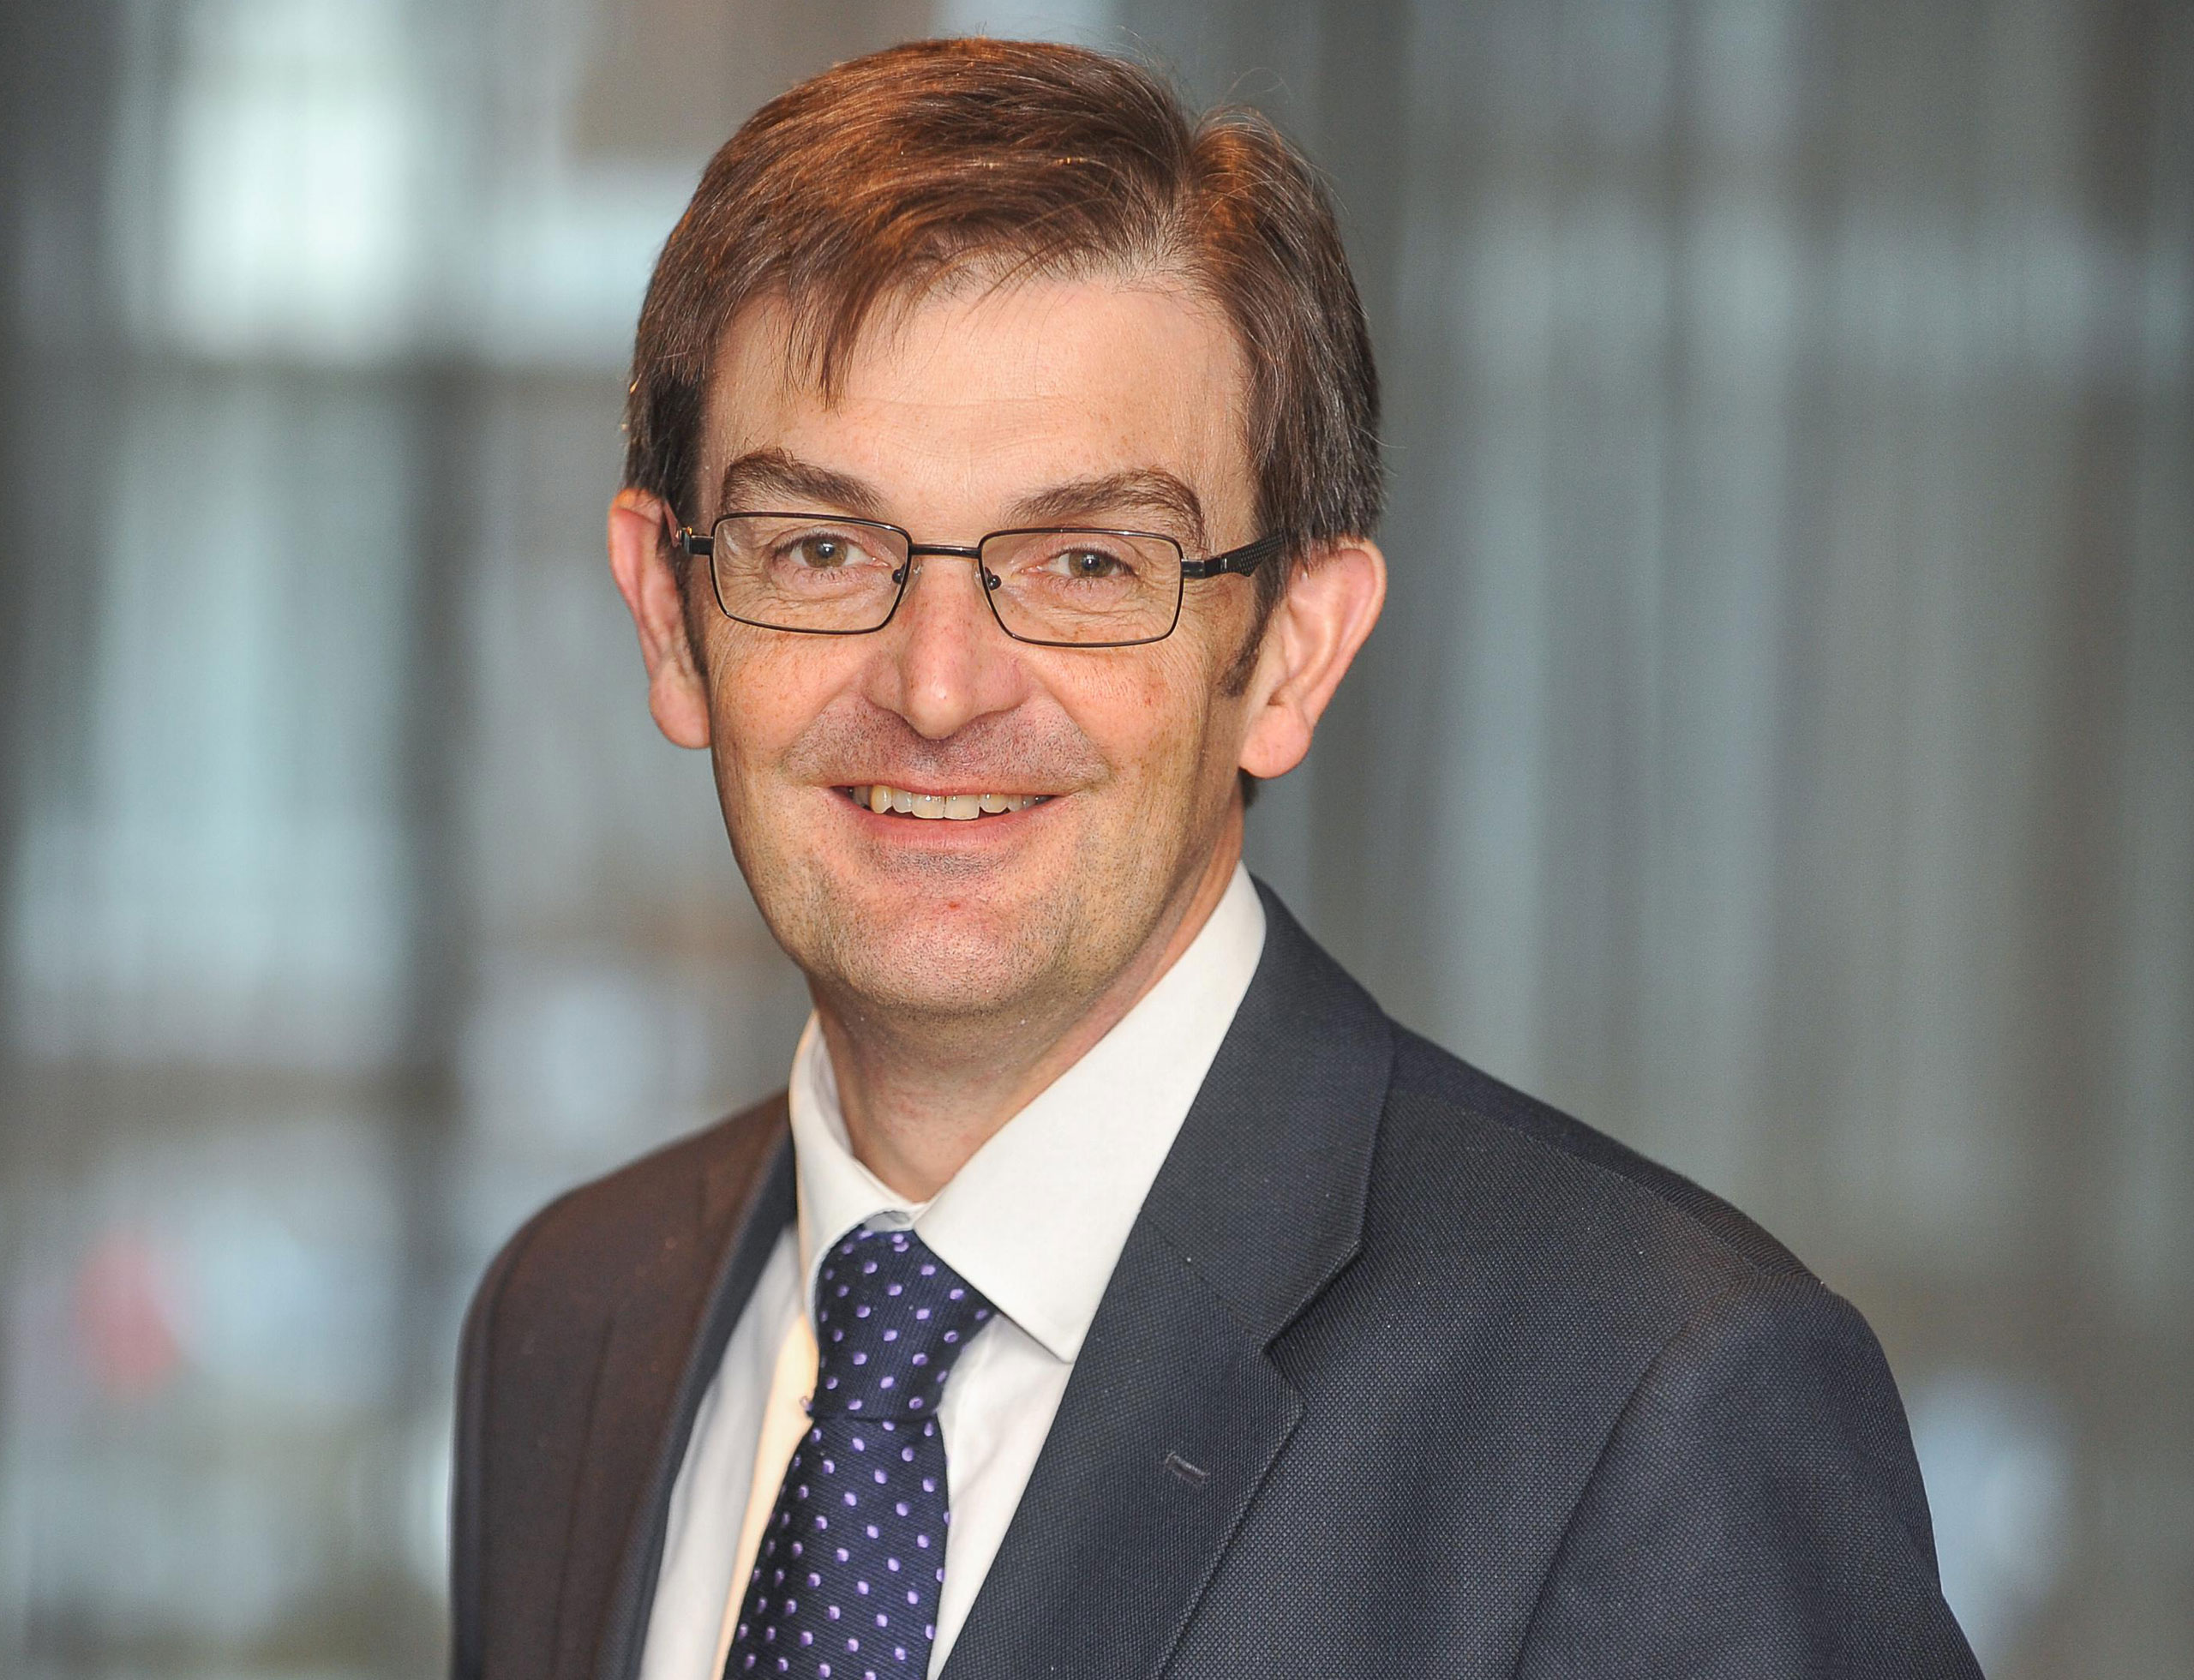 Martin Landray to lead new initiative for Wellcome Trust to develop new clinical research guidelines